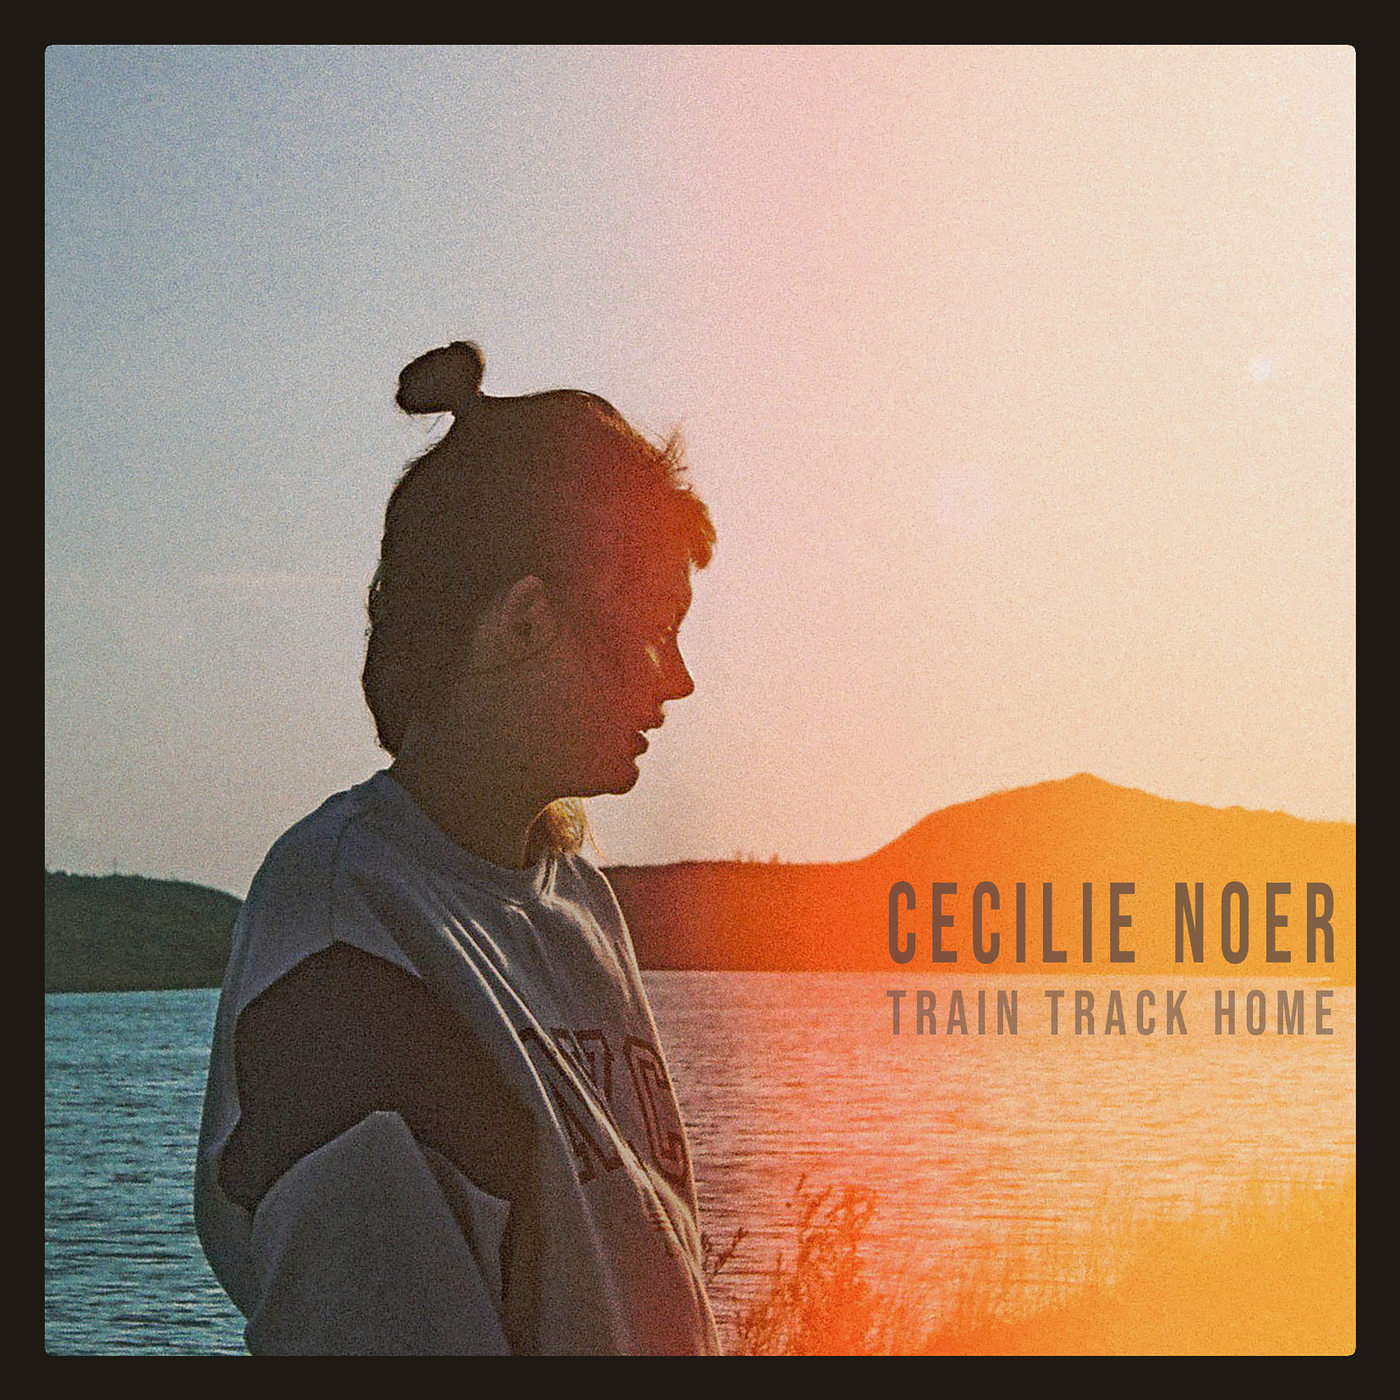 Train Track Home - Cecilie Noer